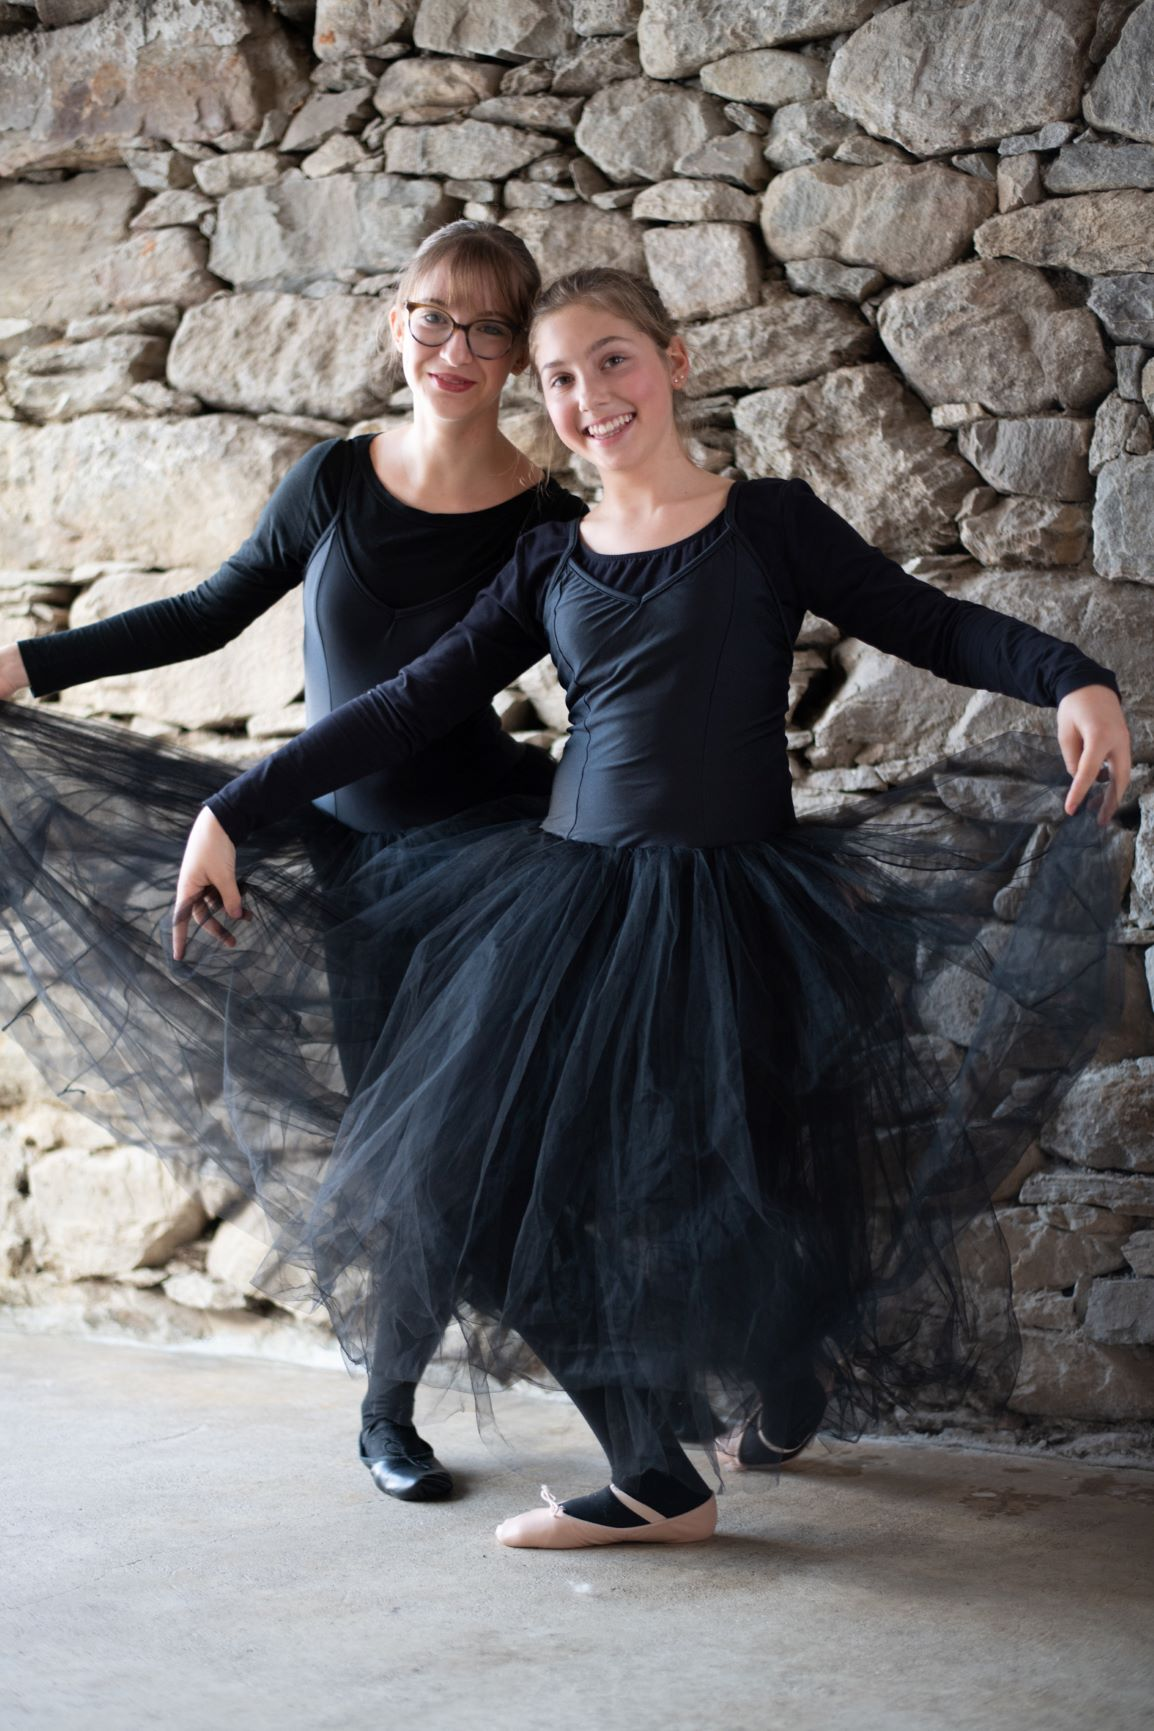 Ballerinas in long black tutus - Photo © Daniela Brugger